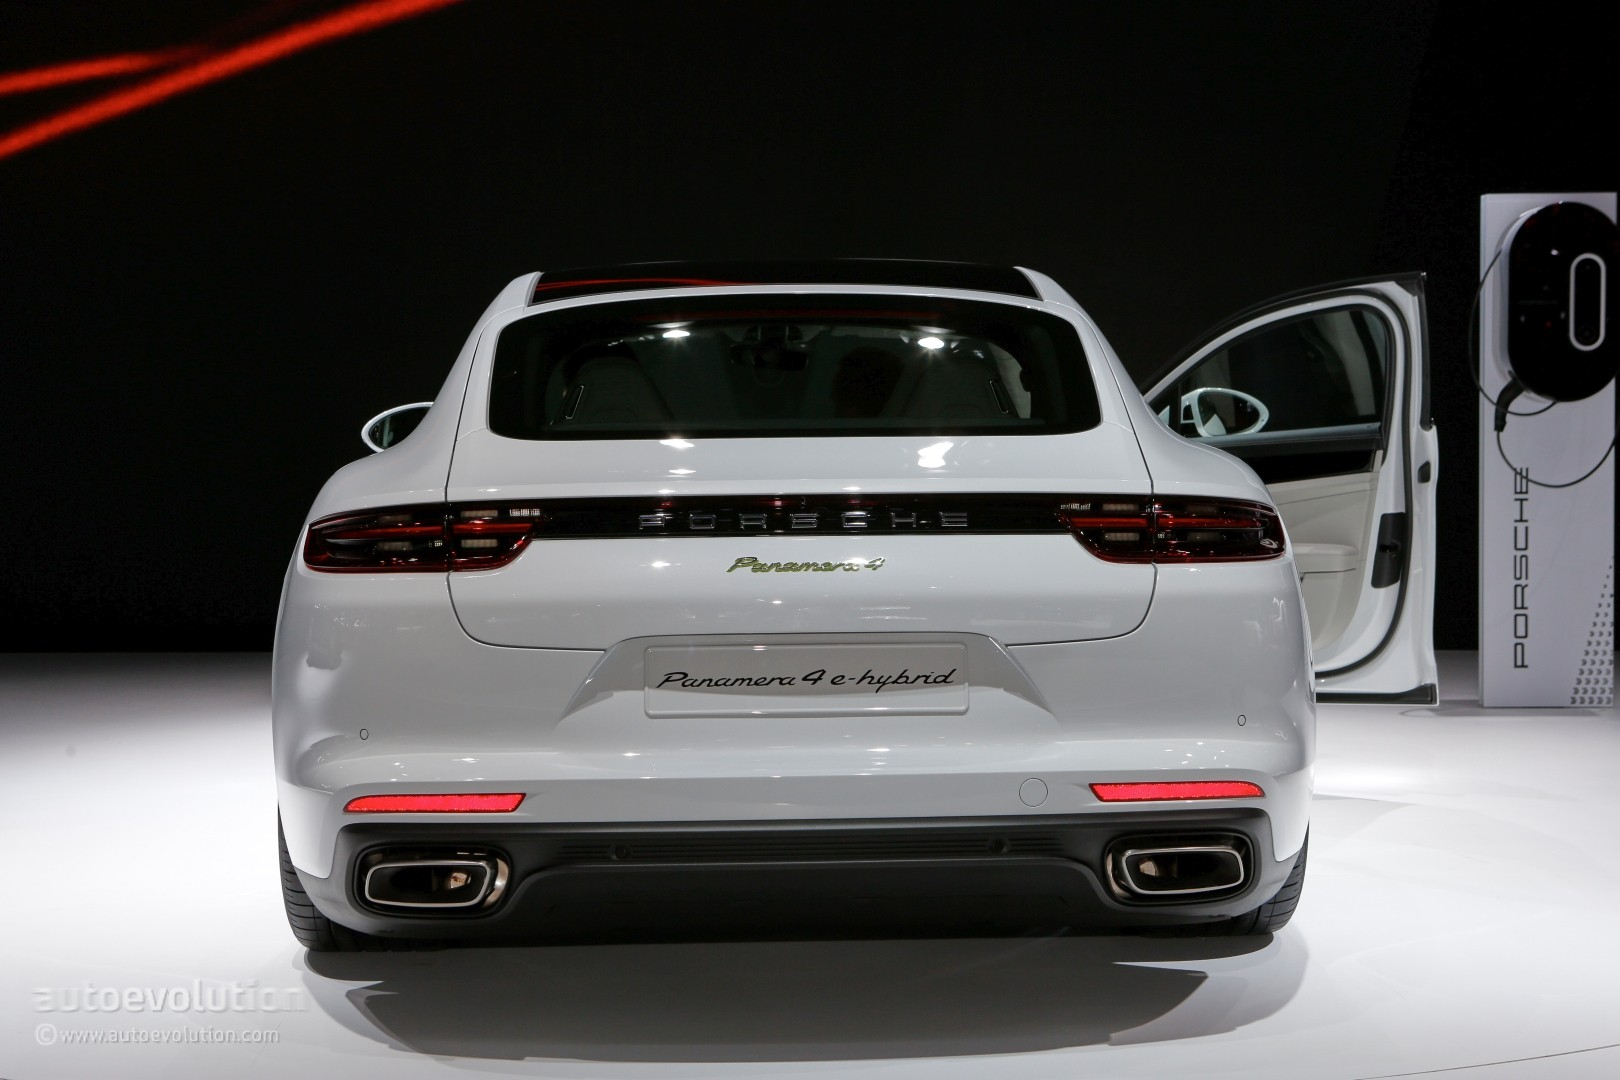 2017 porsche panamera 4 e hybrid is a paris glimpse into porsche 39 s future autoevolution. Black Bedroom Furniture Sets. Home Design Ideas